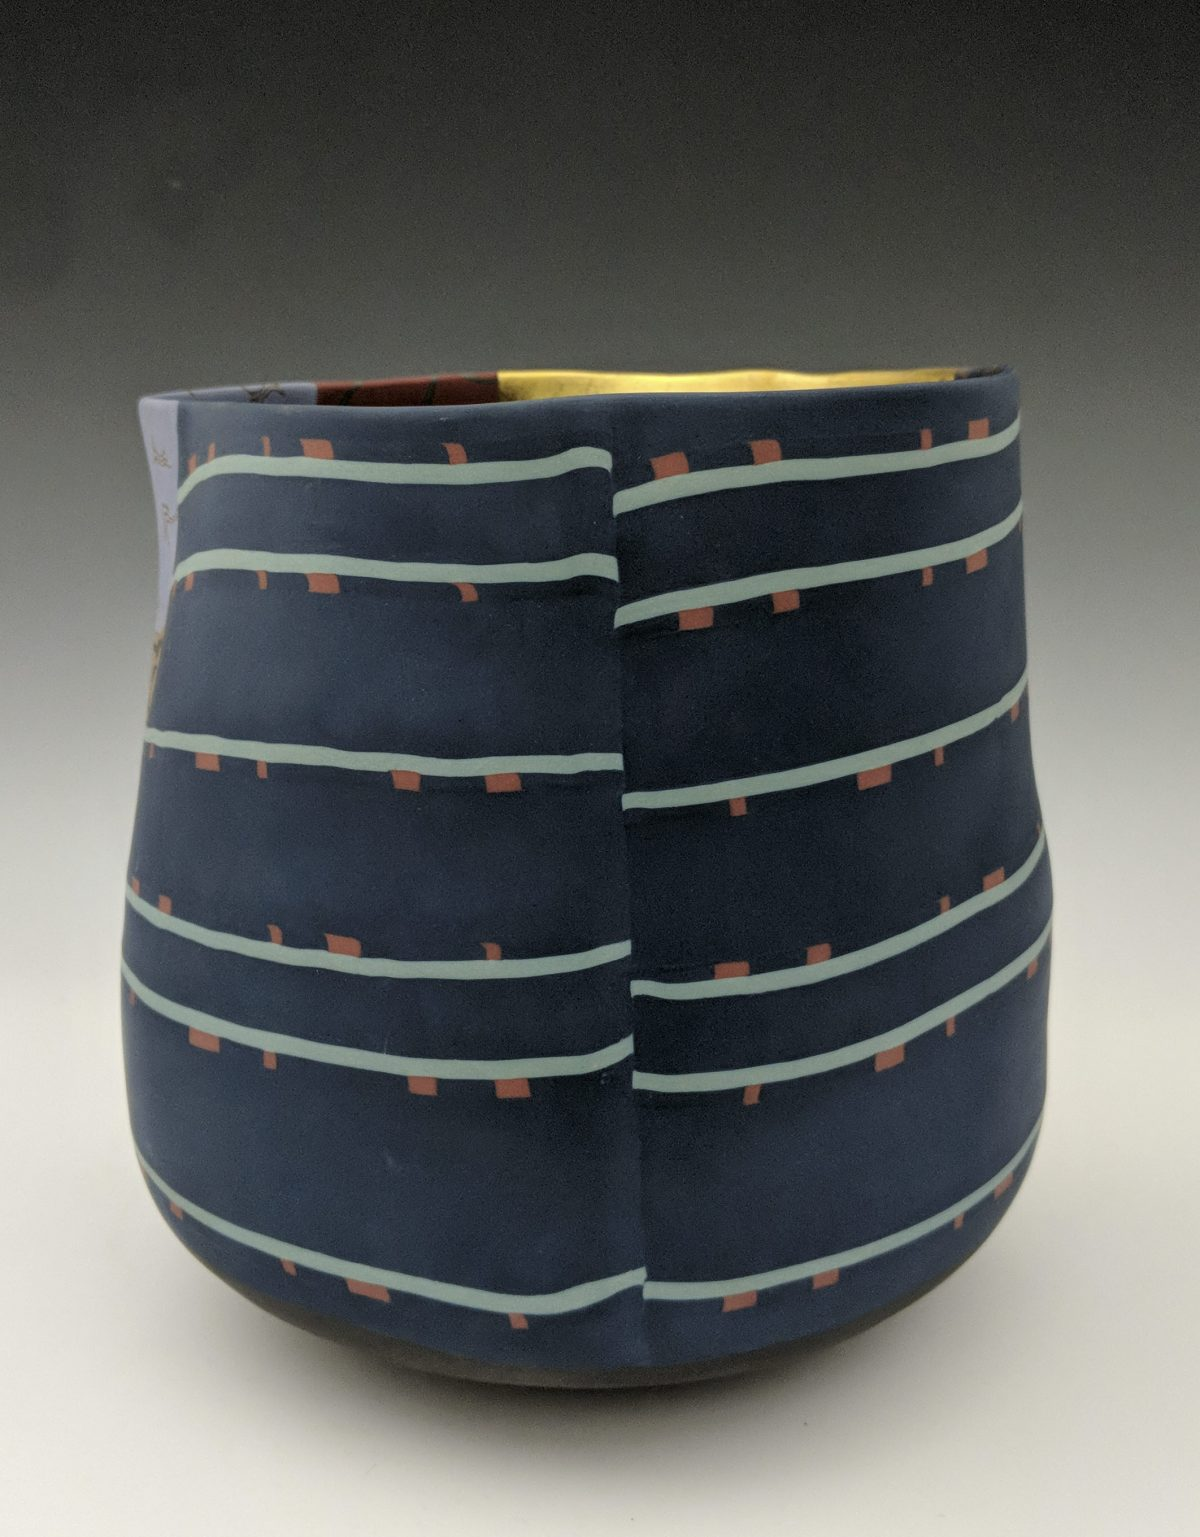 Thomas Hoadley - colorful nerikomi vase